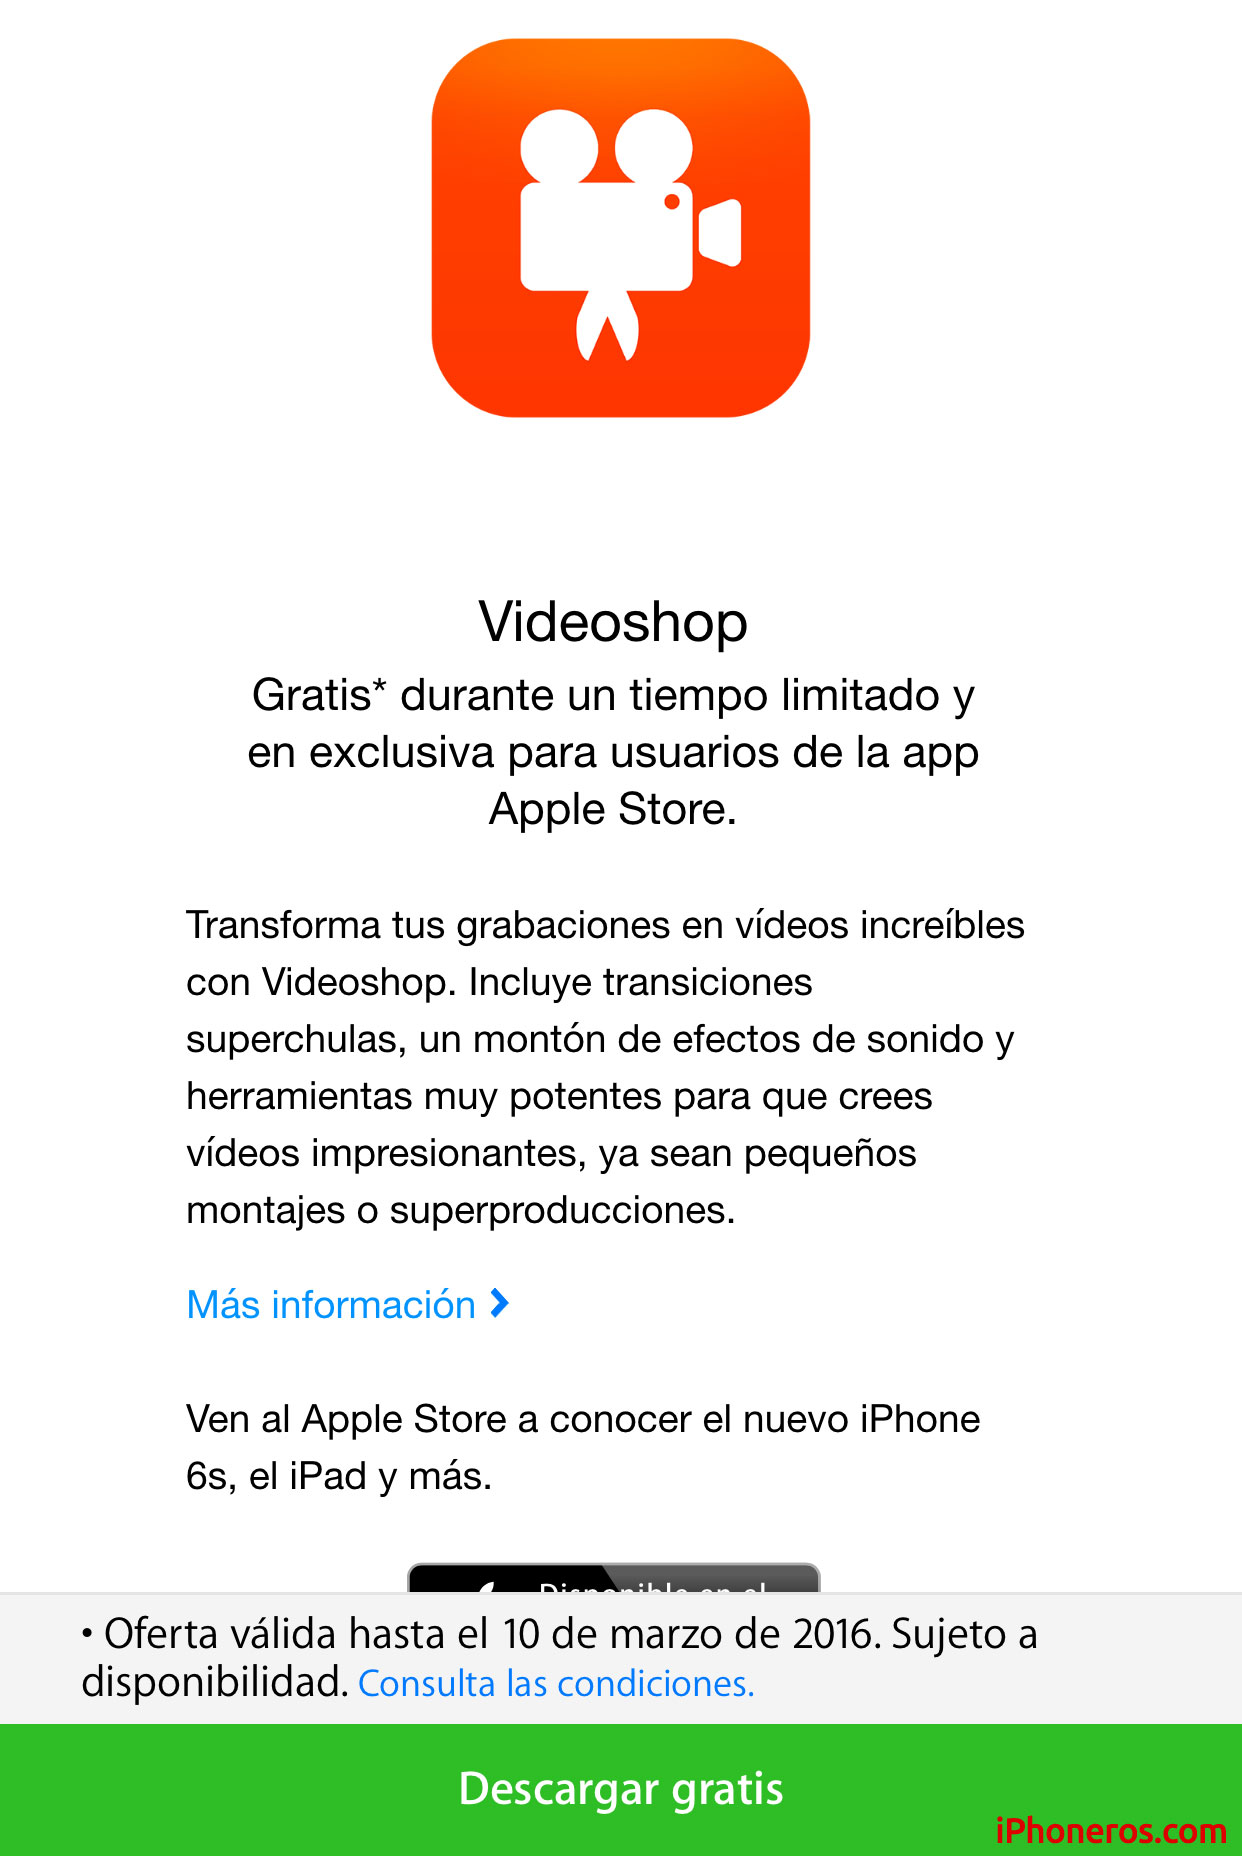 Videoshop gratis en la Apple Store